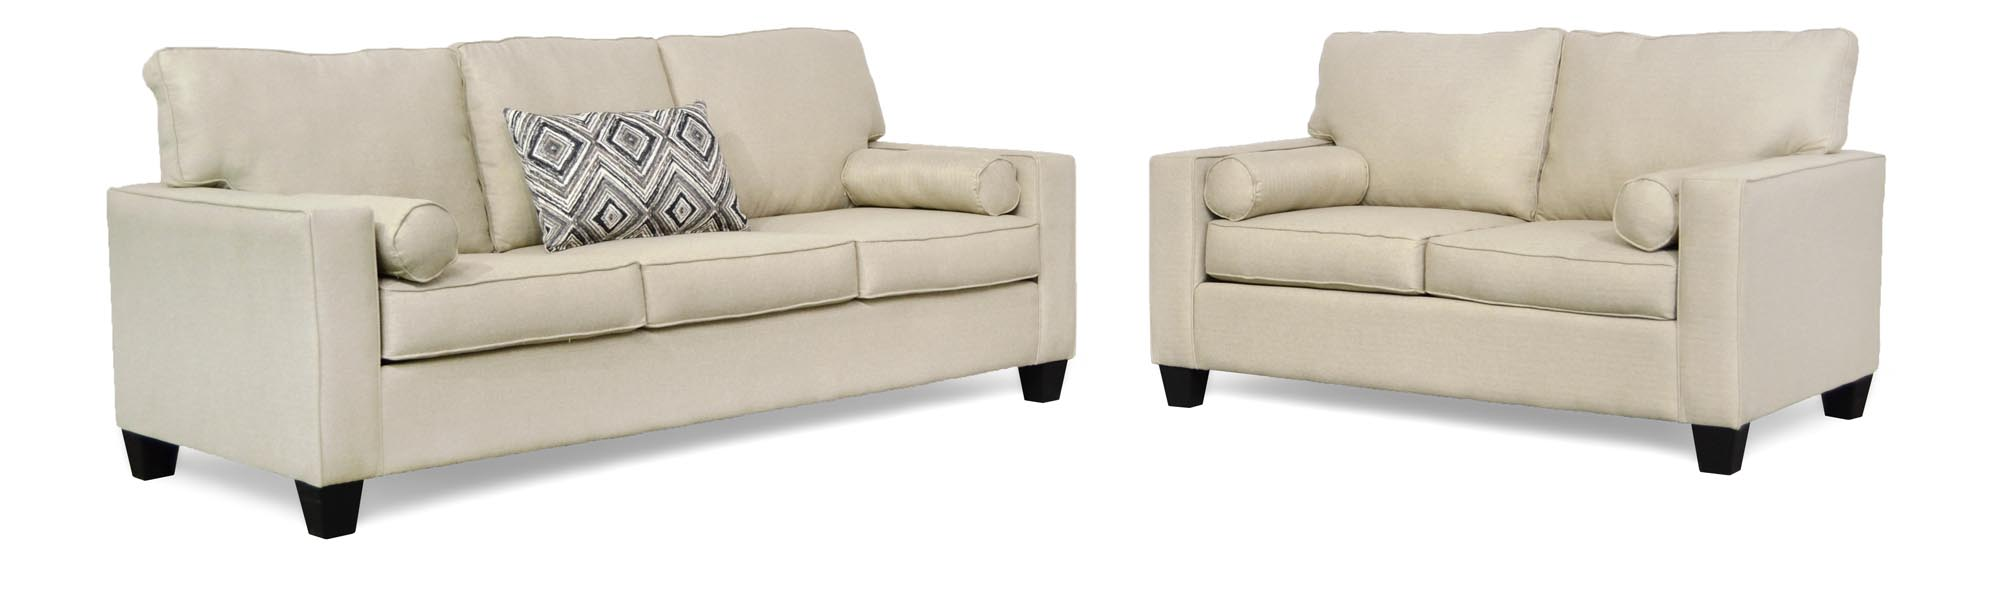 1260 Delilah Collection Sofa and Loveseat $795